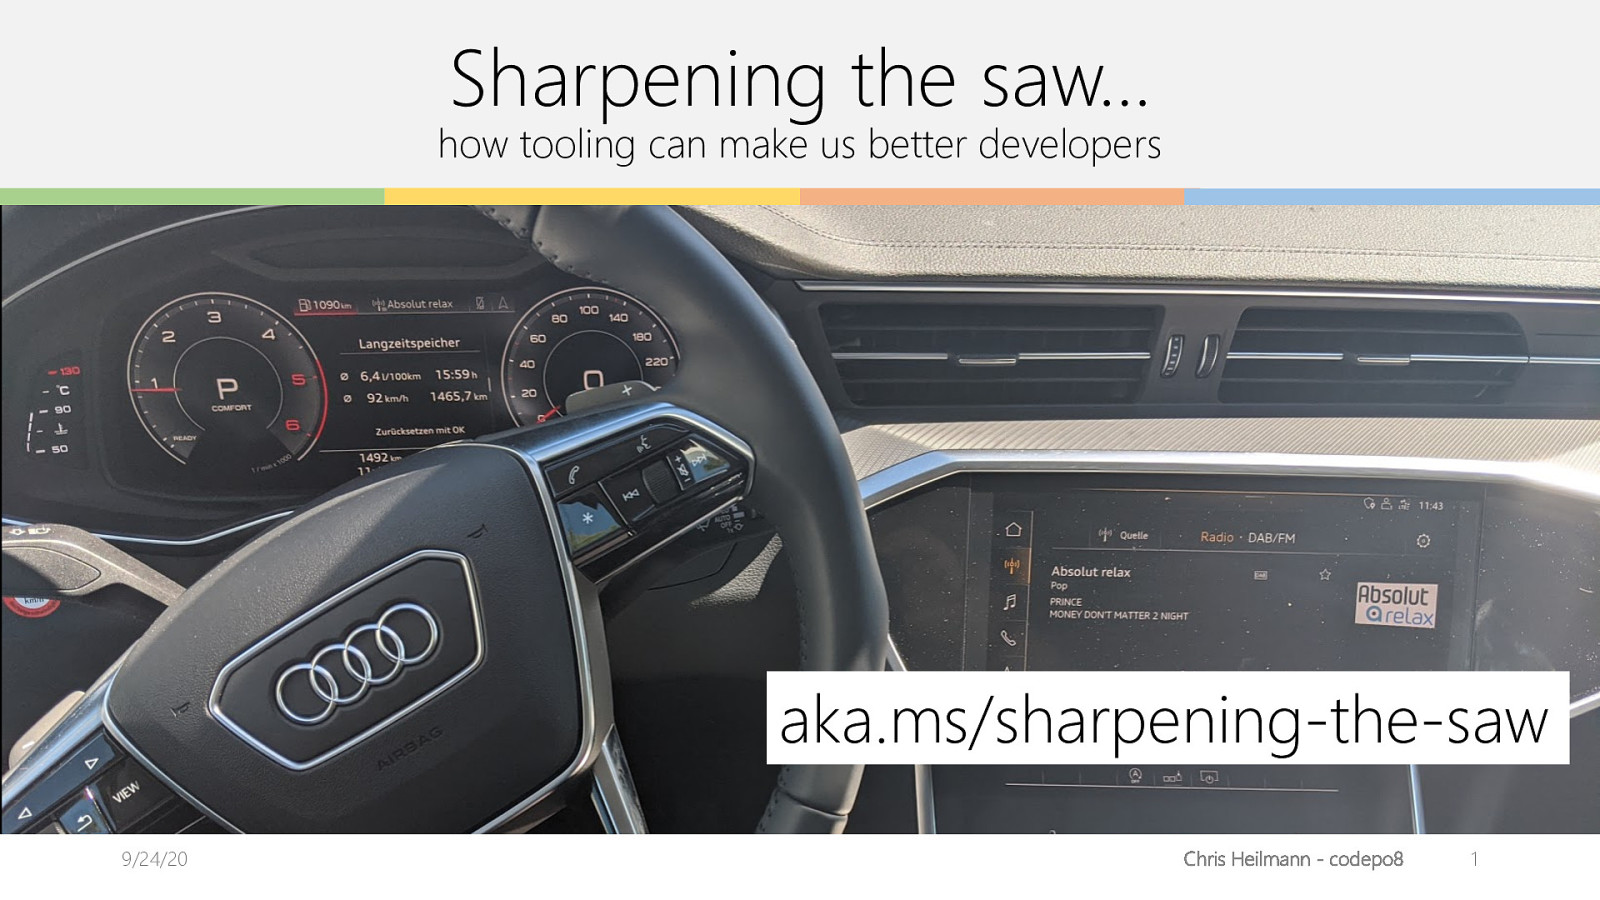 Sharpening the saw - how tooling can make you a better developer